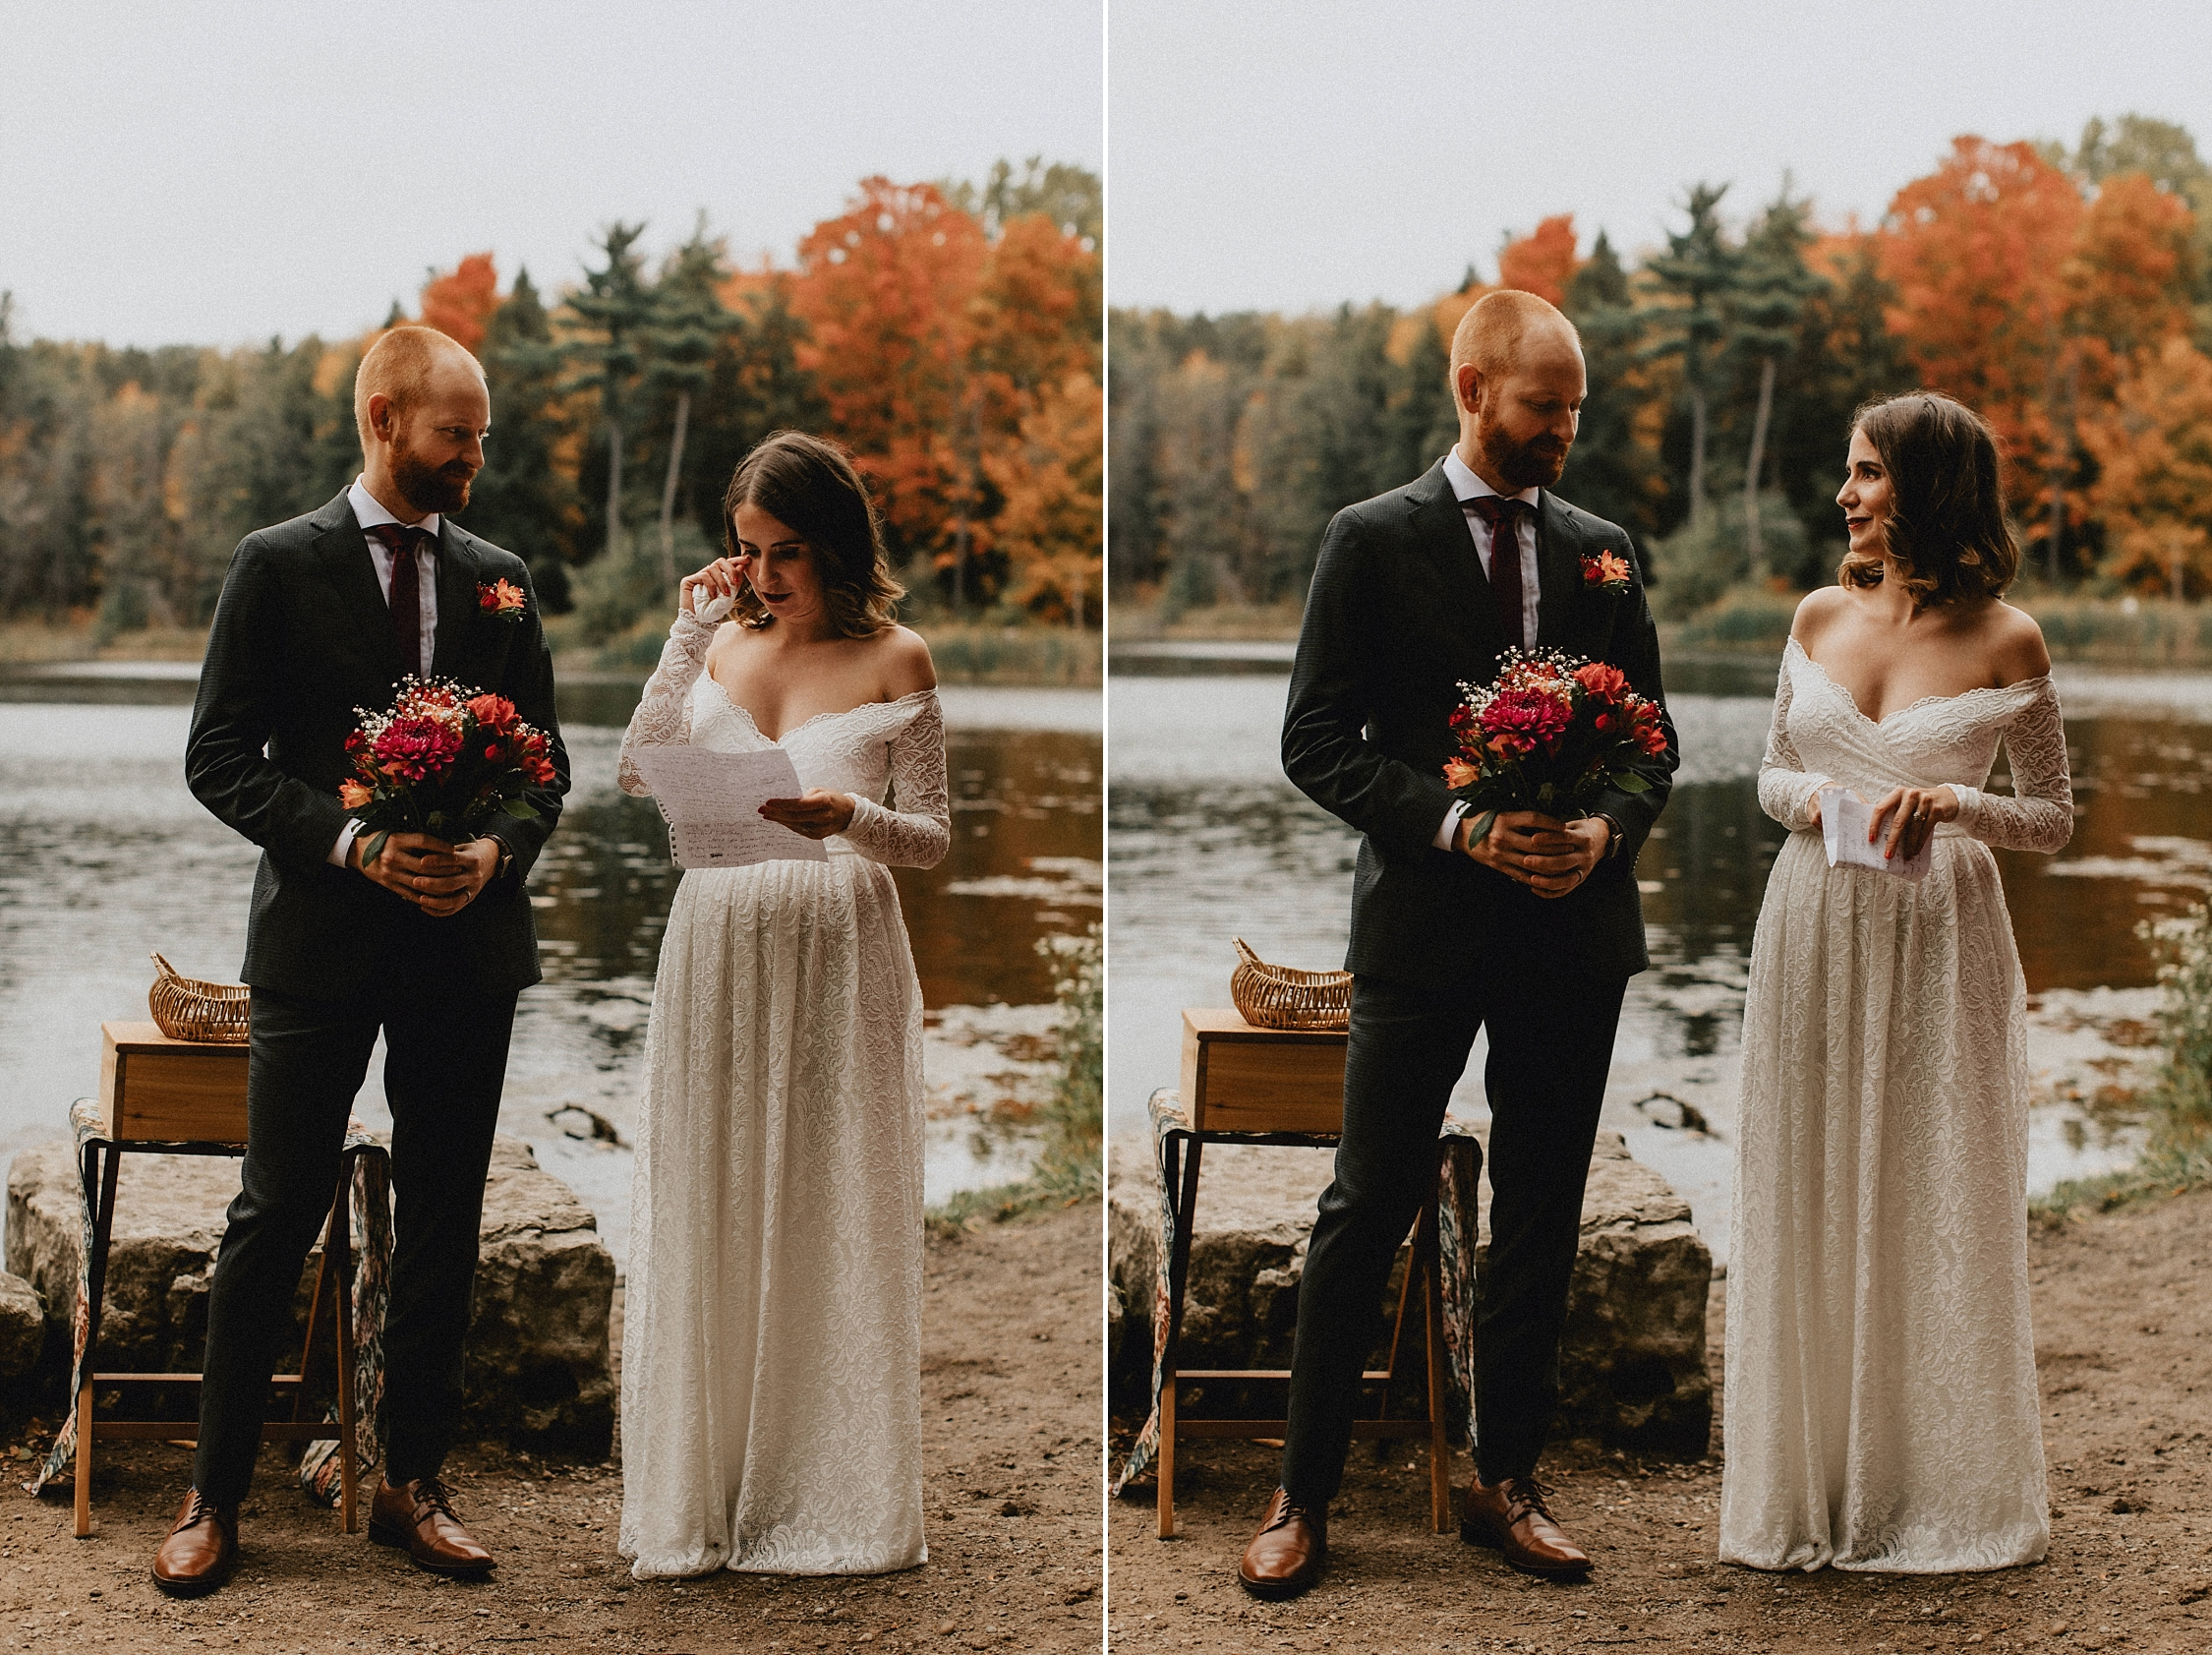 Bride reads vows to groom by pond -Huron Natural Area Micro Wedding Kitchener, Ontario